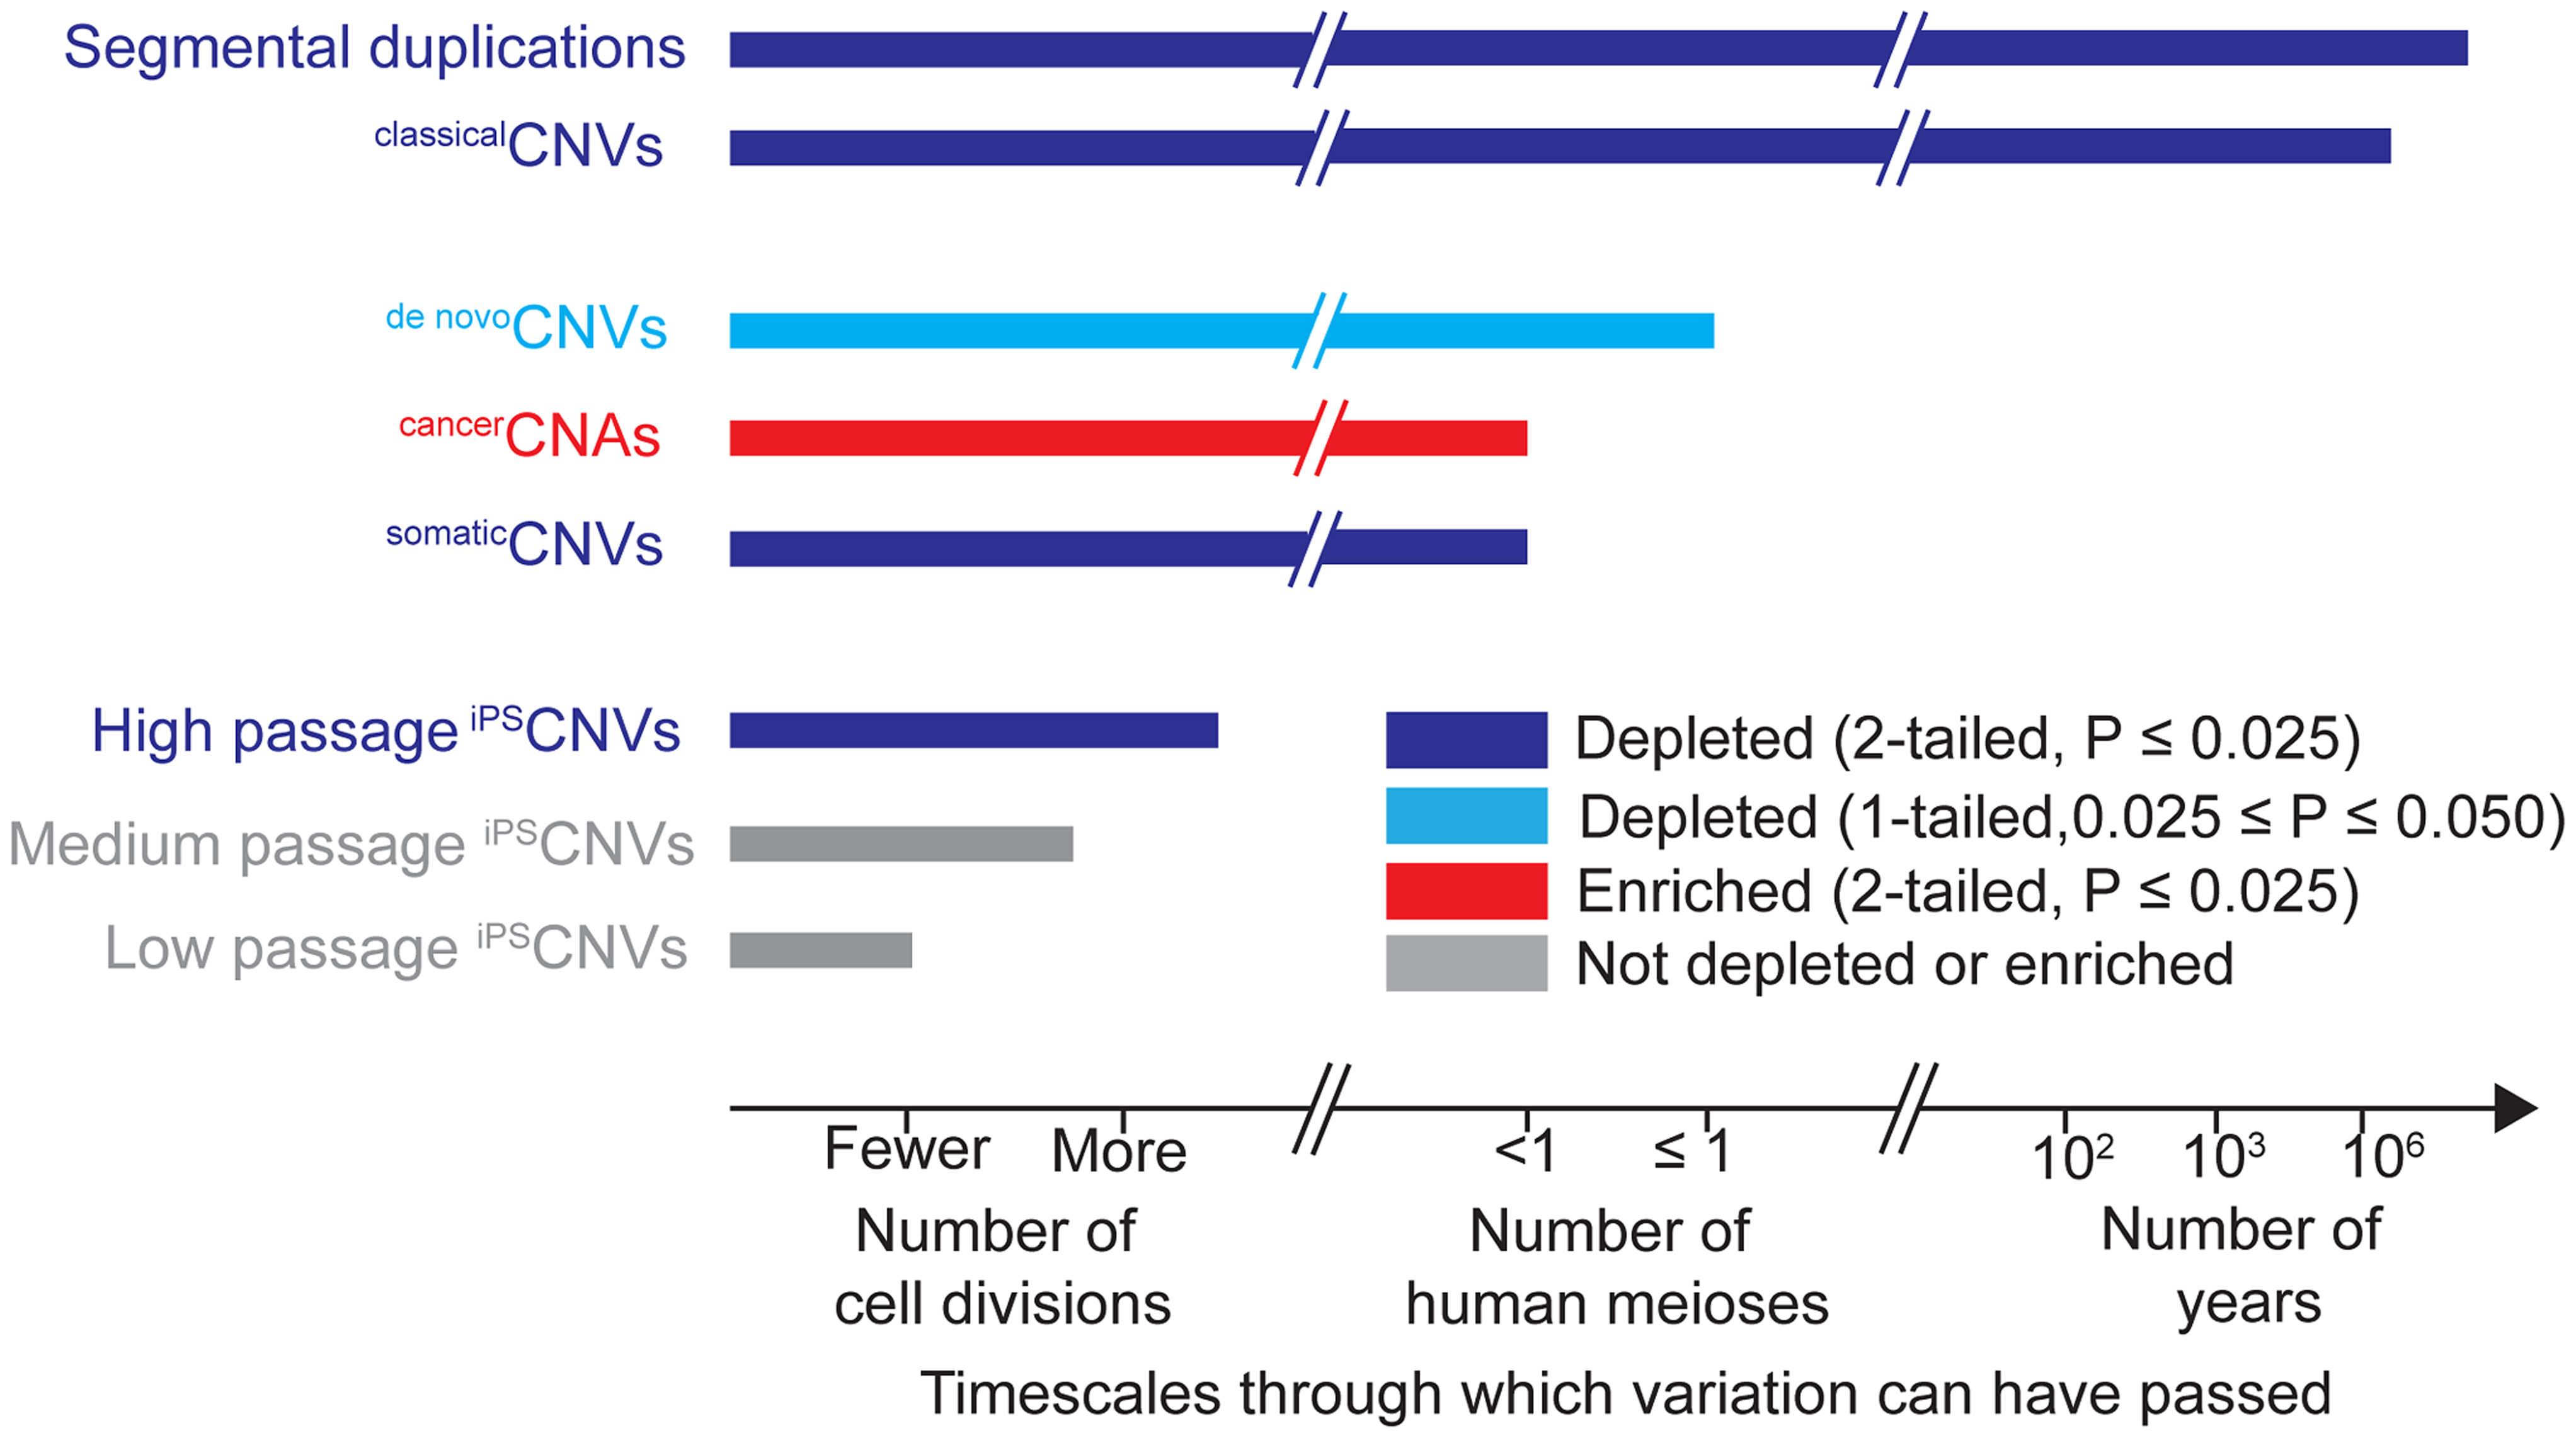 Timescales through which different types of genomic variation have been present and their relationships to UCEs.